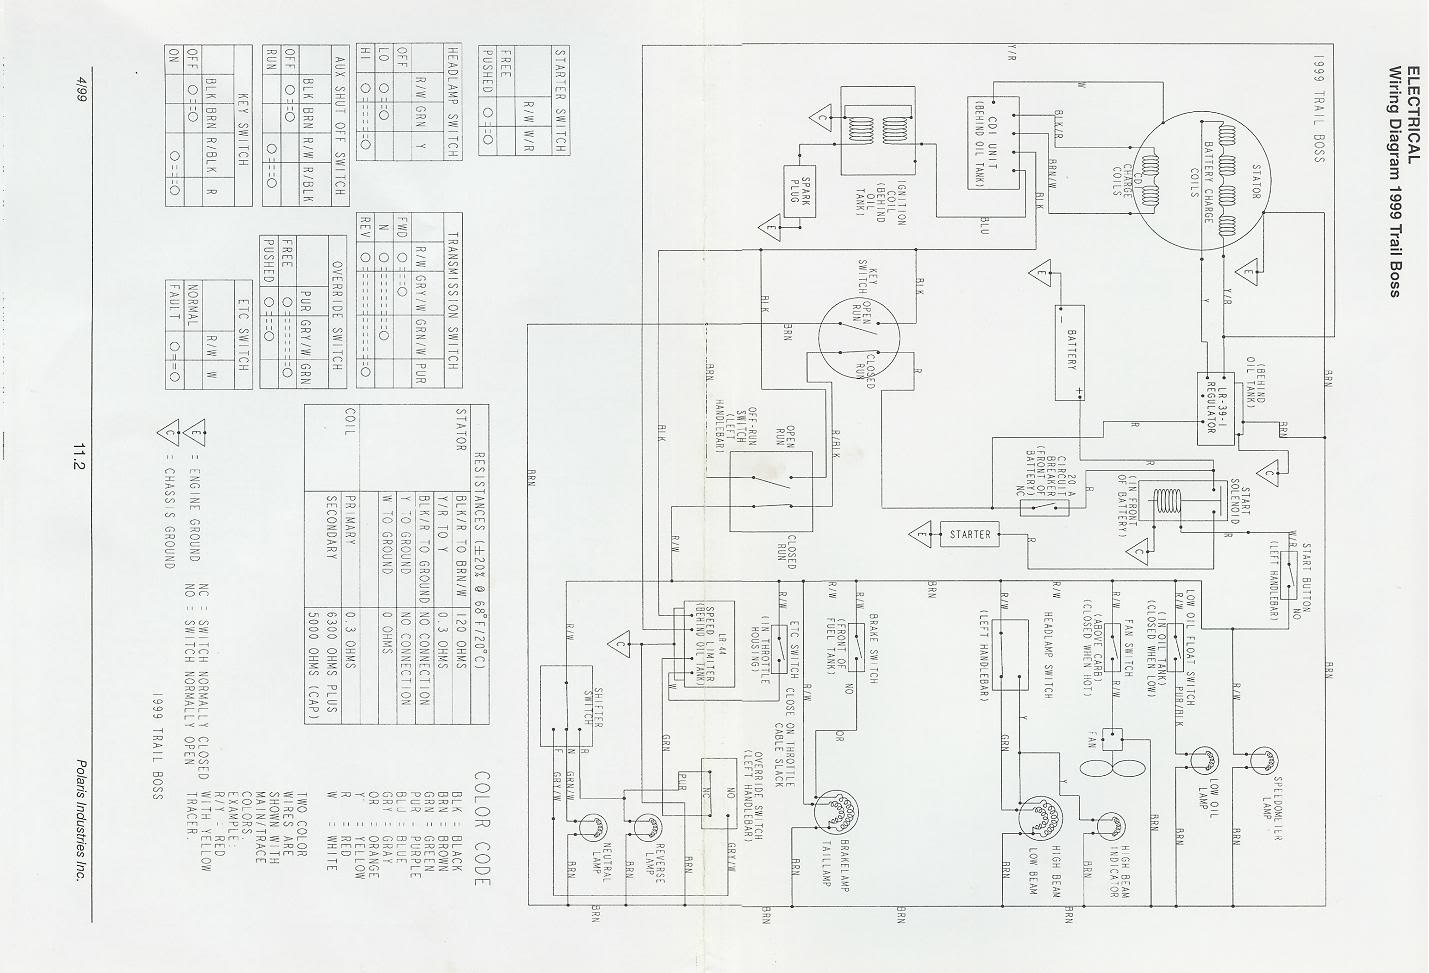 1992 Polaris Trail Boss 350 Wiring Diagram 92 Polaris